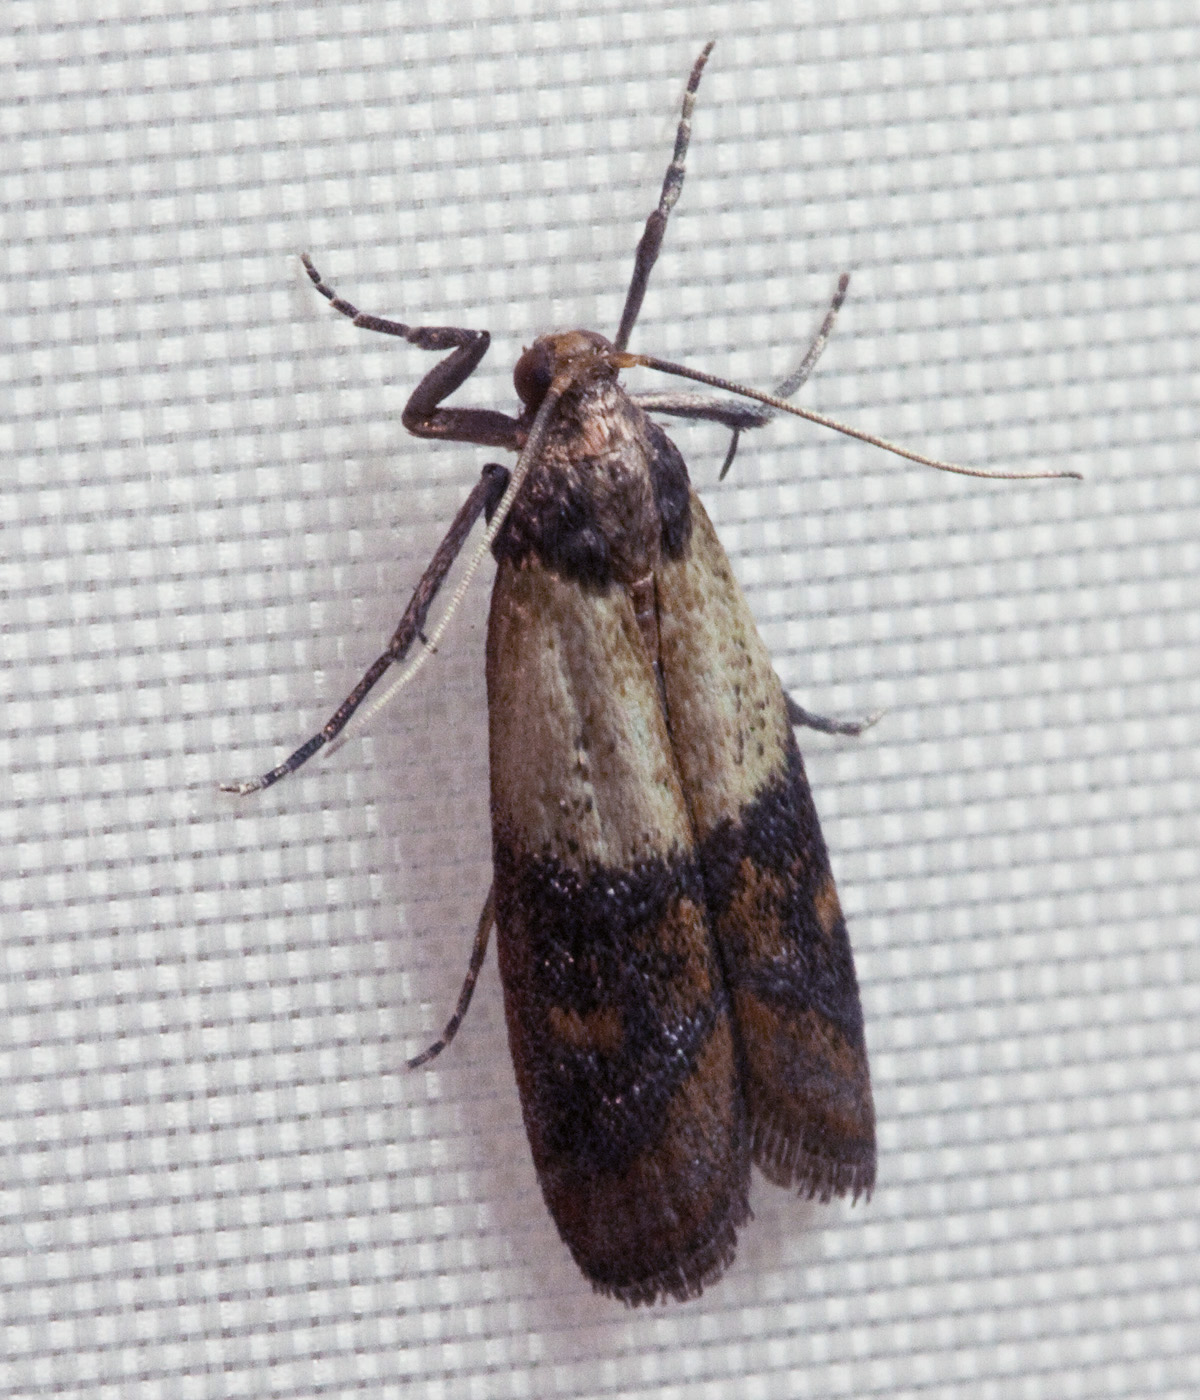 Clothes moth identification - photo#17